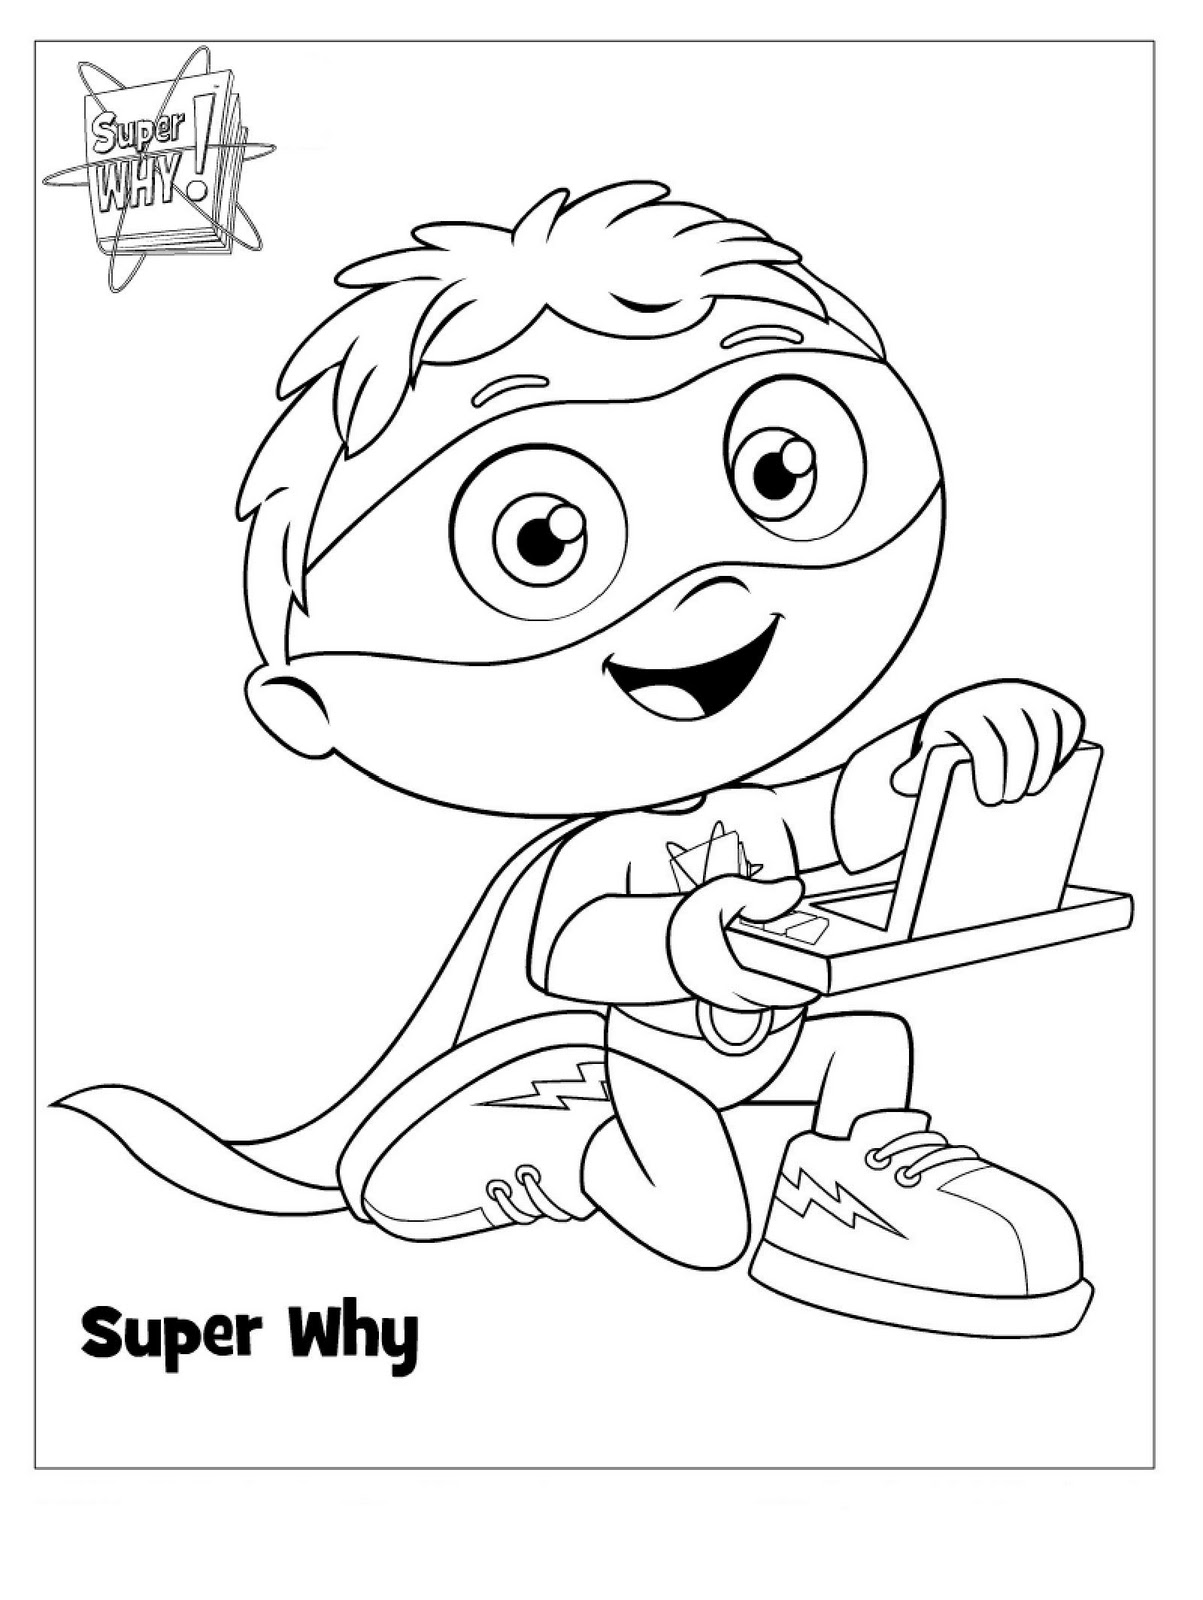 super why coloring pages free - photo#5